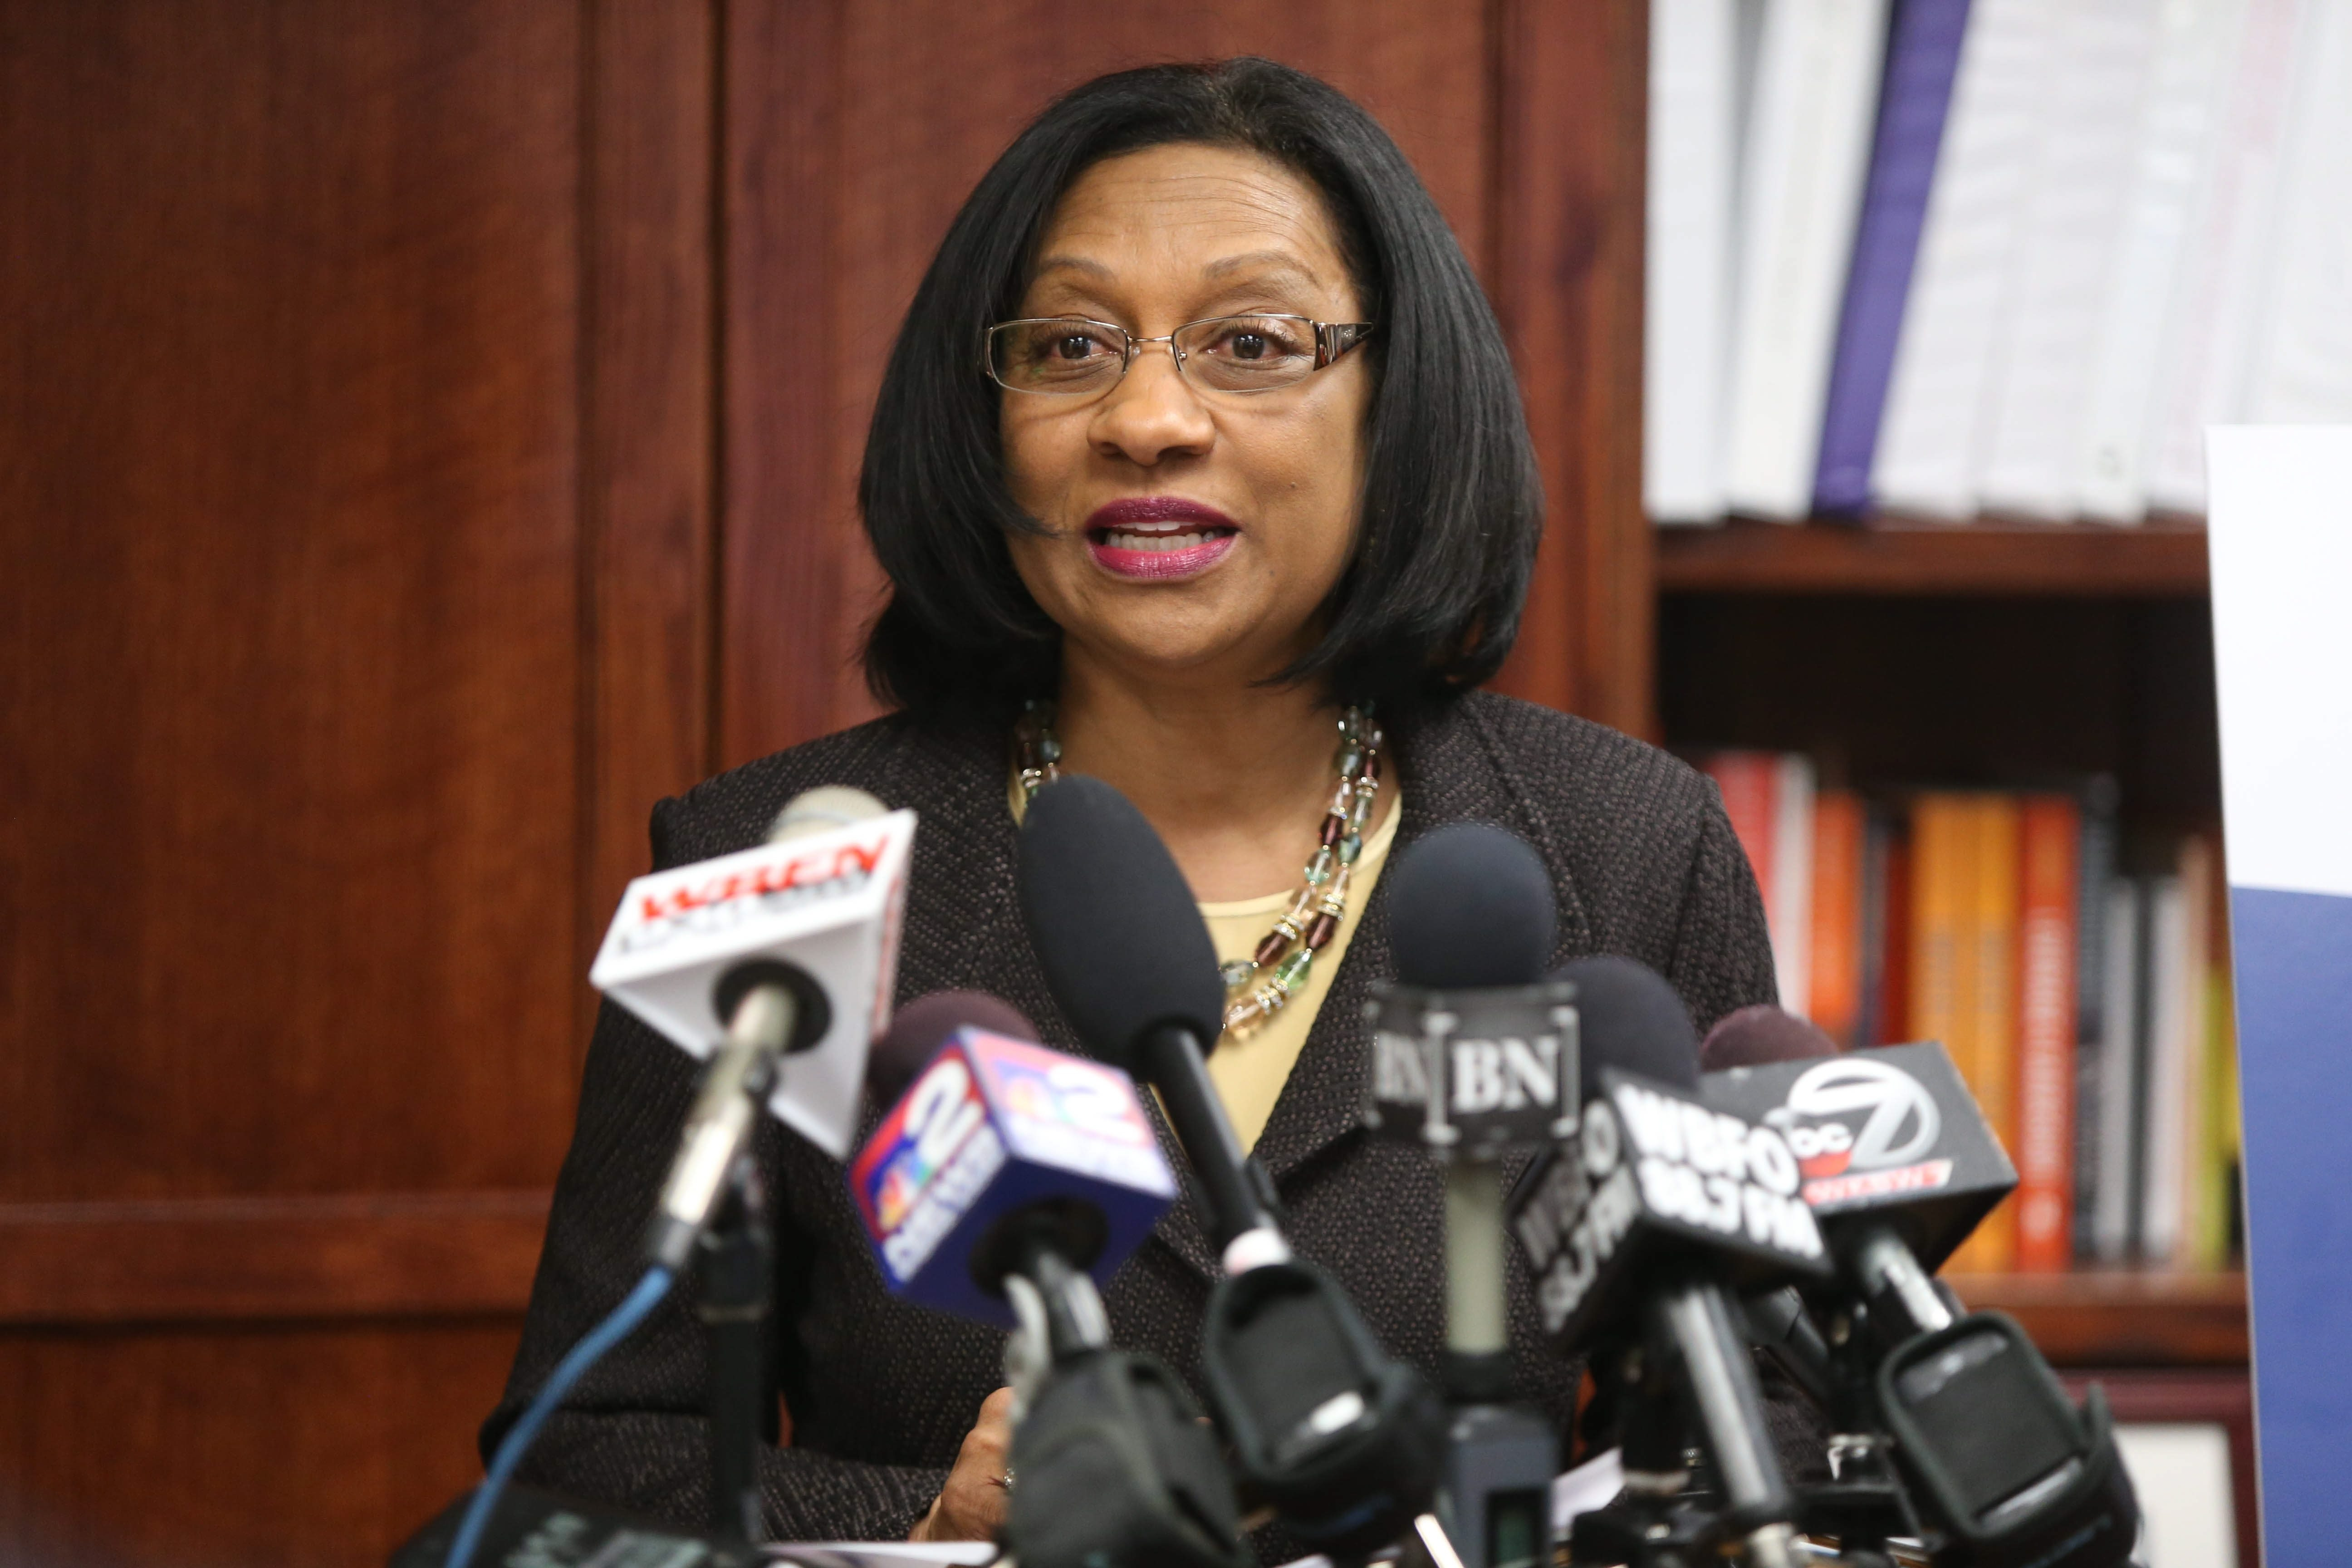 Buffalo Schools Superintendent Pamela Brown speaks at a press conference today about the Mary Guinn appointment.